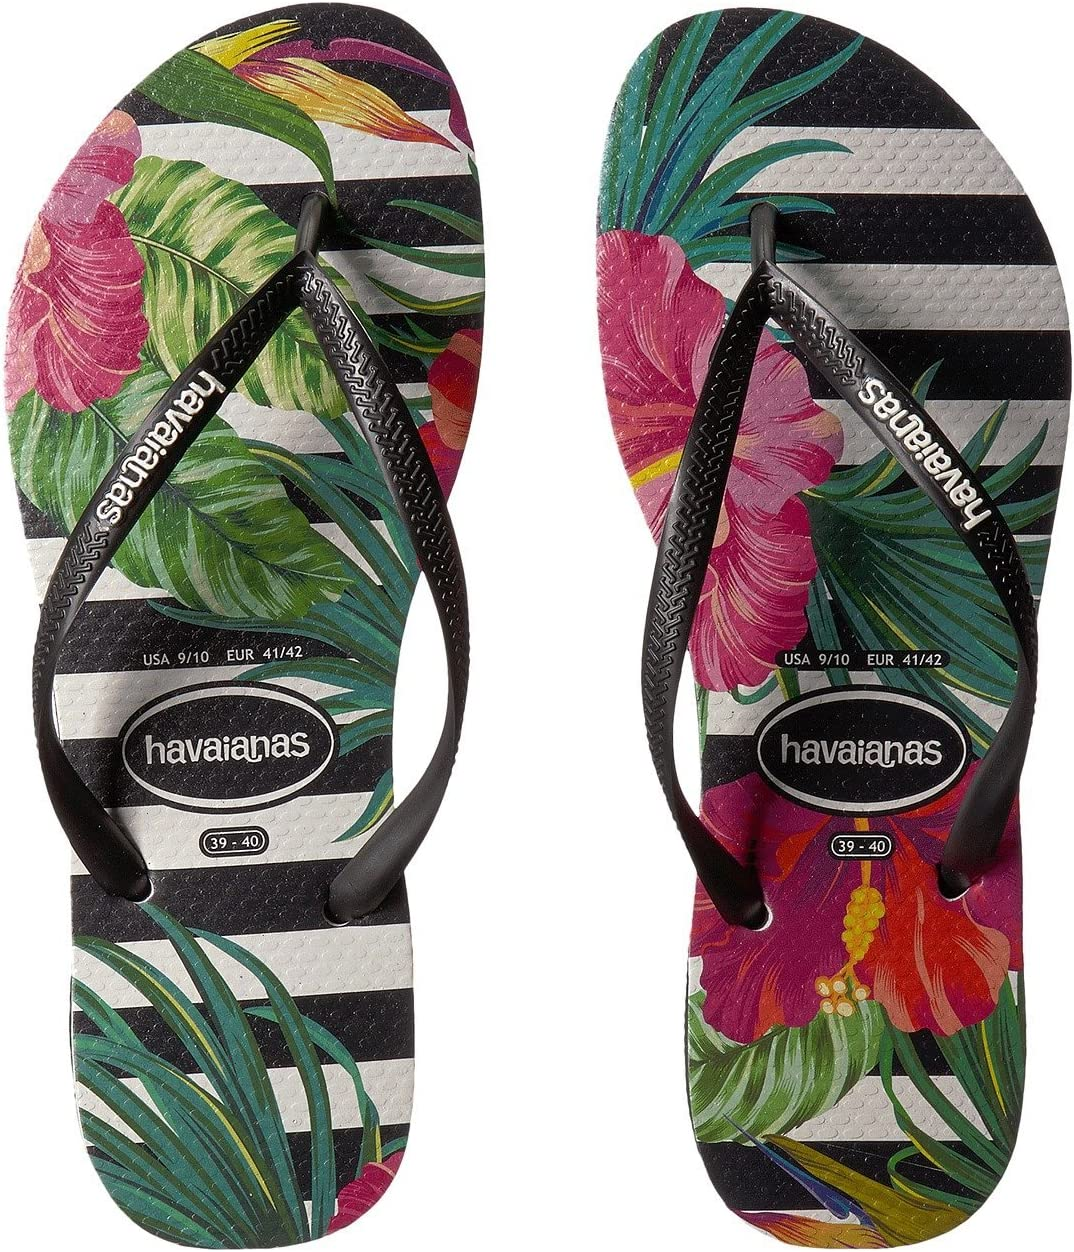 438e3c676351ca Havaianas Shoes   Accessories